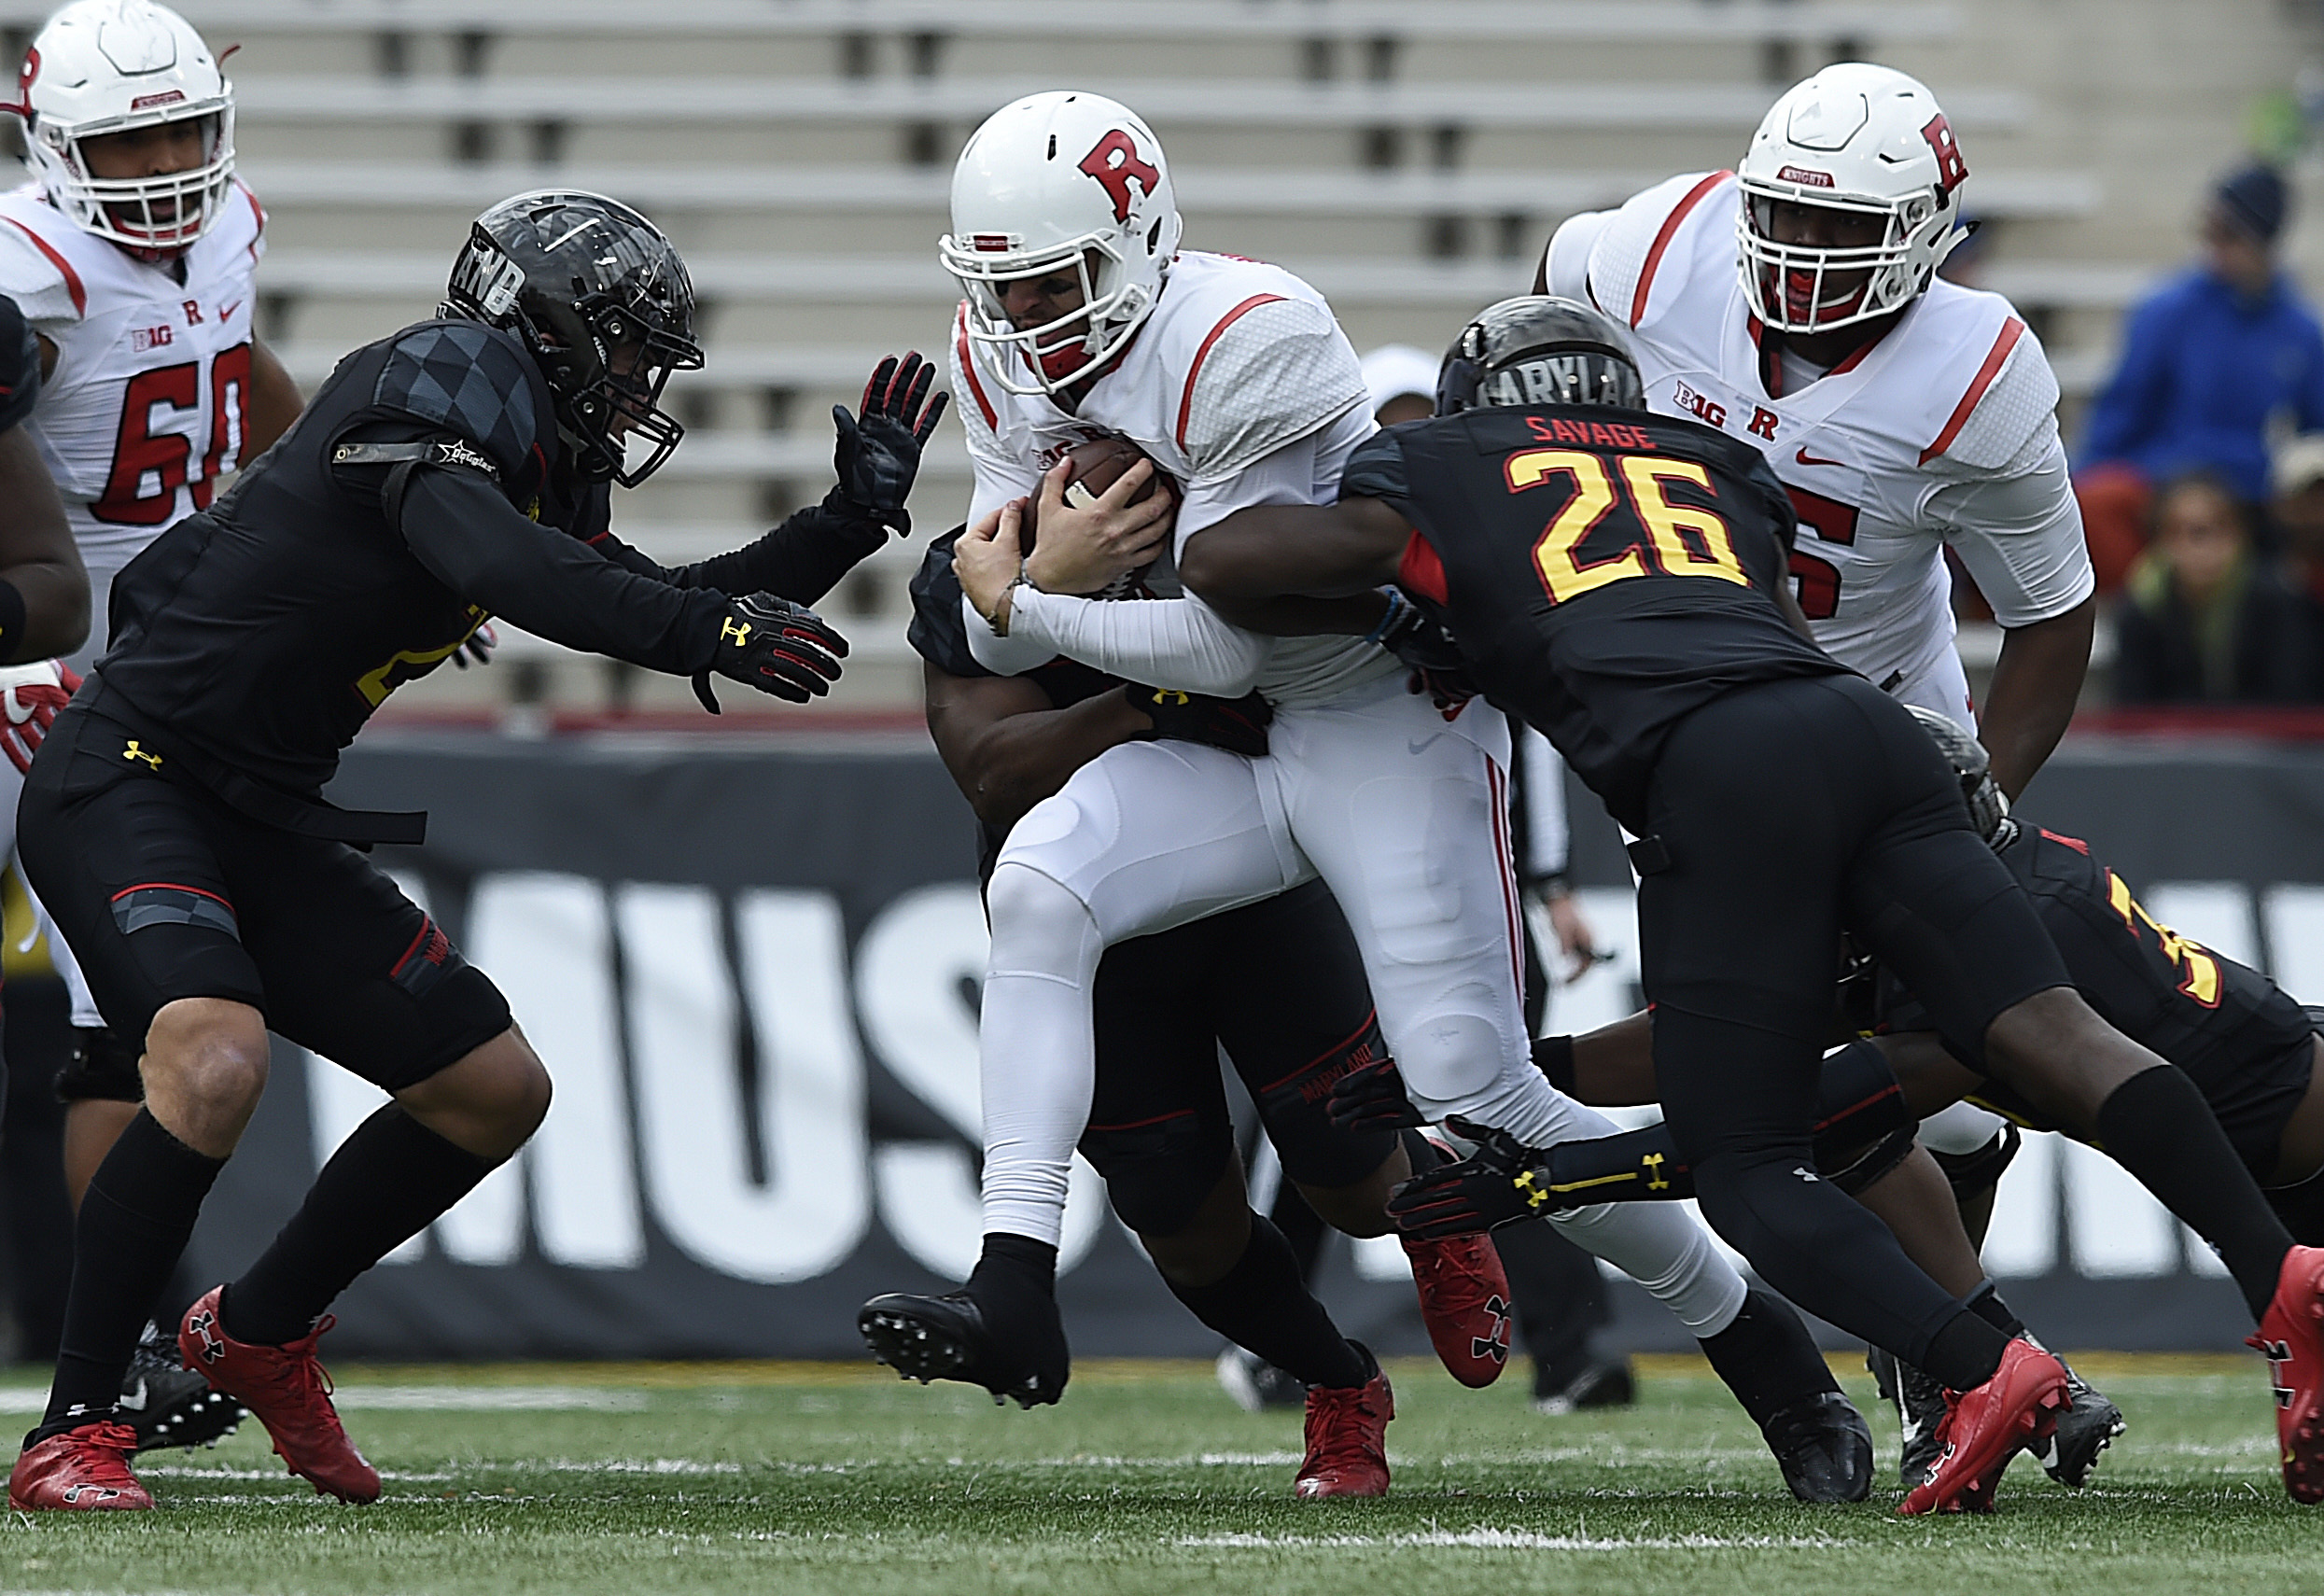 Rutgers quarterback Giovanni Rescigno, center, rushes as Maryland players Shane Cockerille, left, and Darnell Savage Jr. tackle during the first half of an NCAA college football game, Saturday, Nov. 26, 2016 in College Park, Md. Maryland won 31-13. (AP Ph